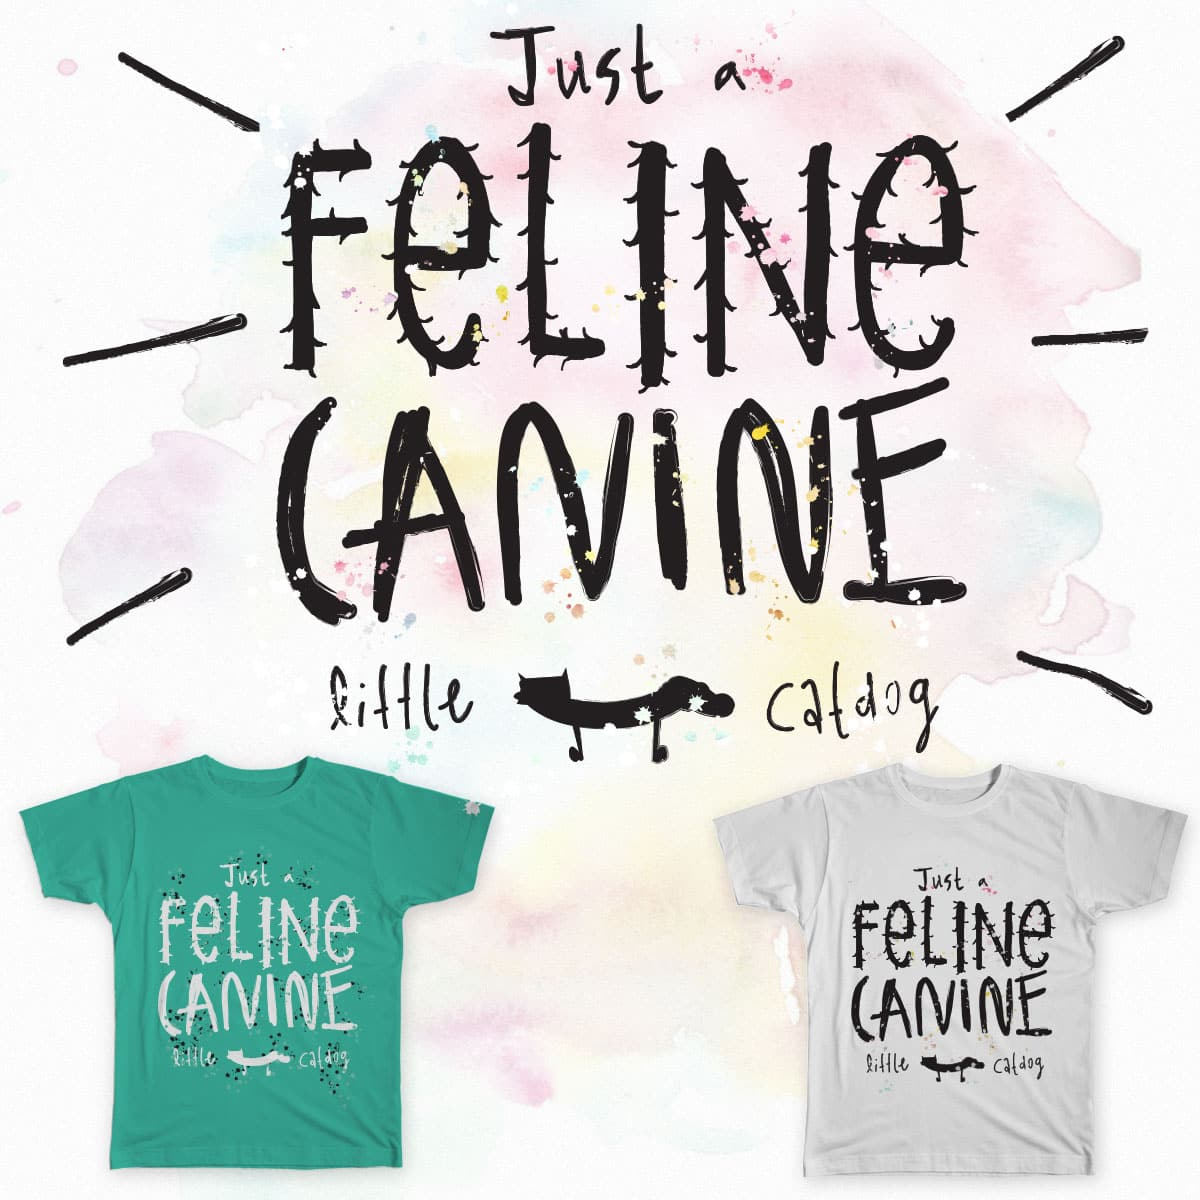 Just a Feline Canine  by Fatti-Burke on Threadless